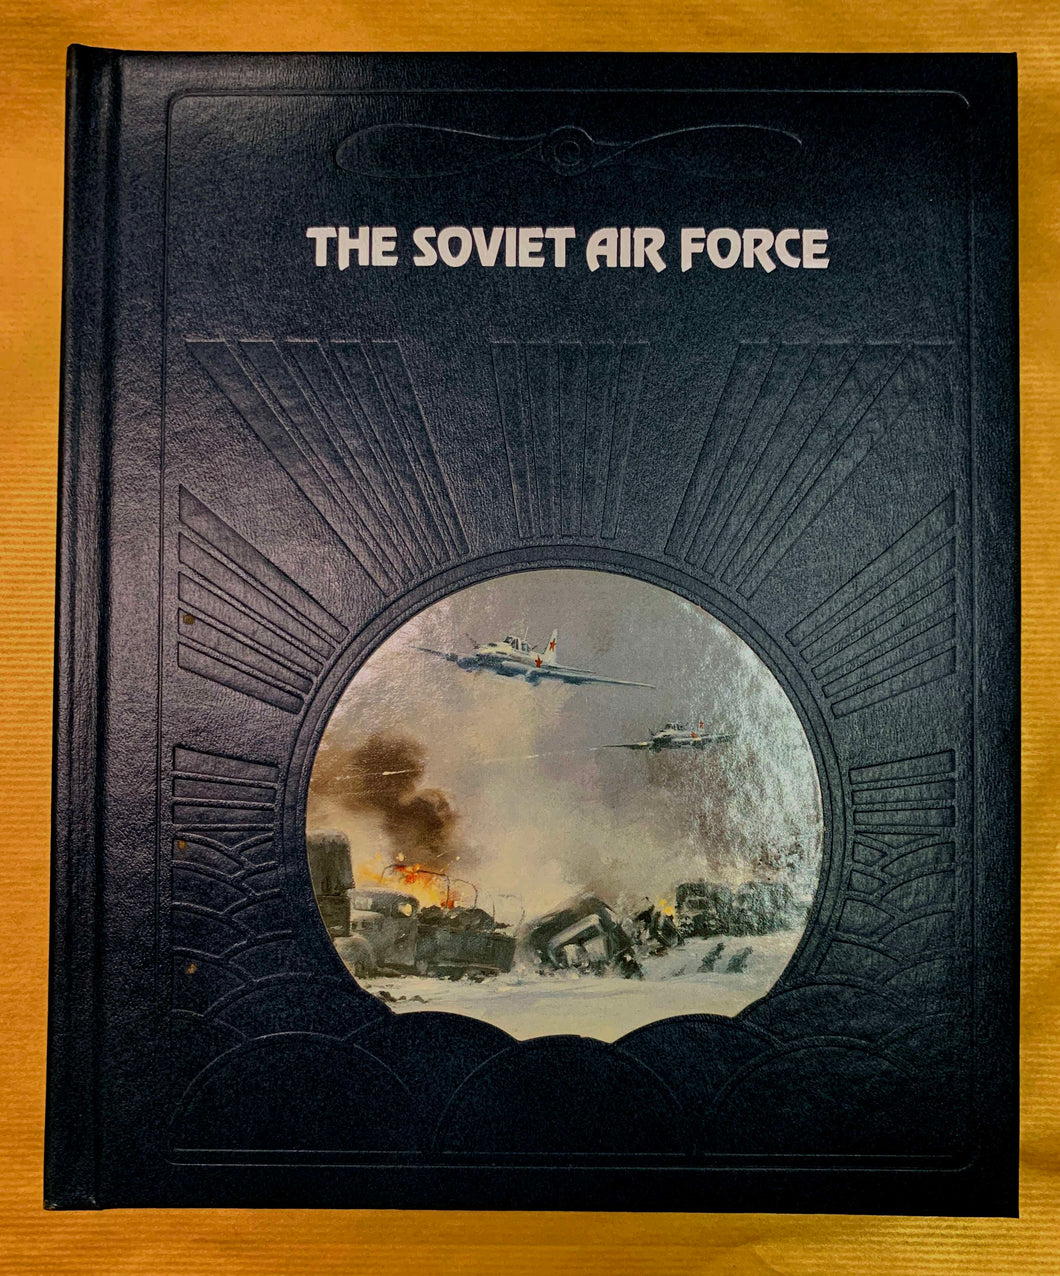 The Soviet Air Force